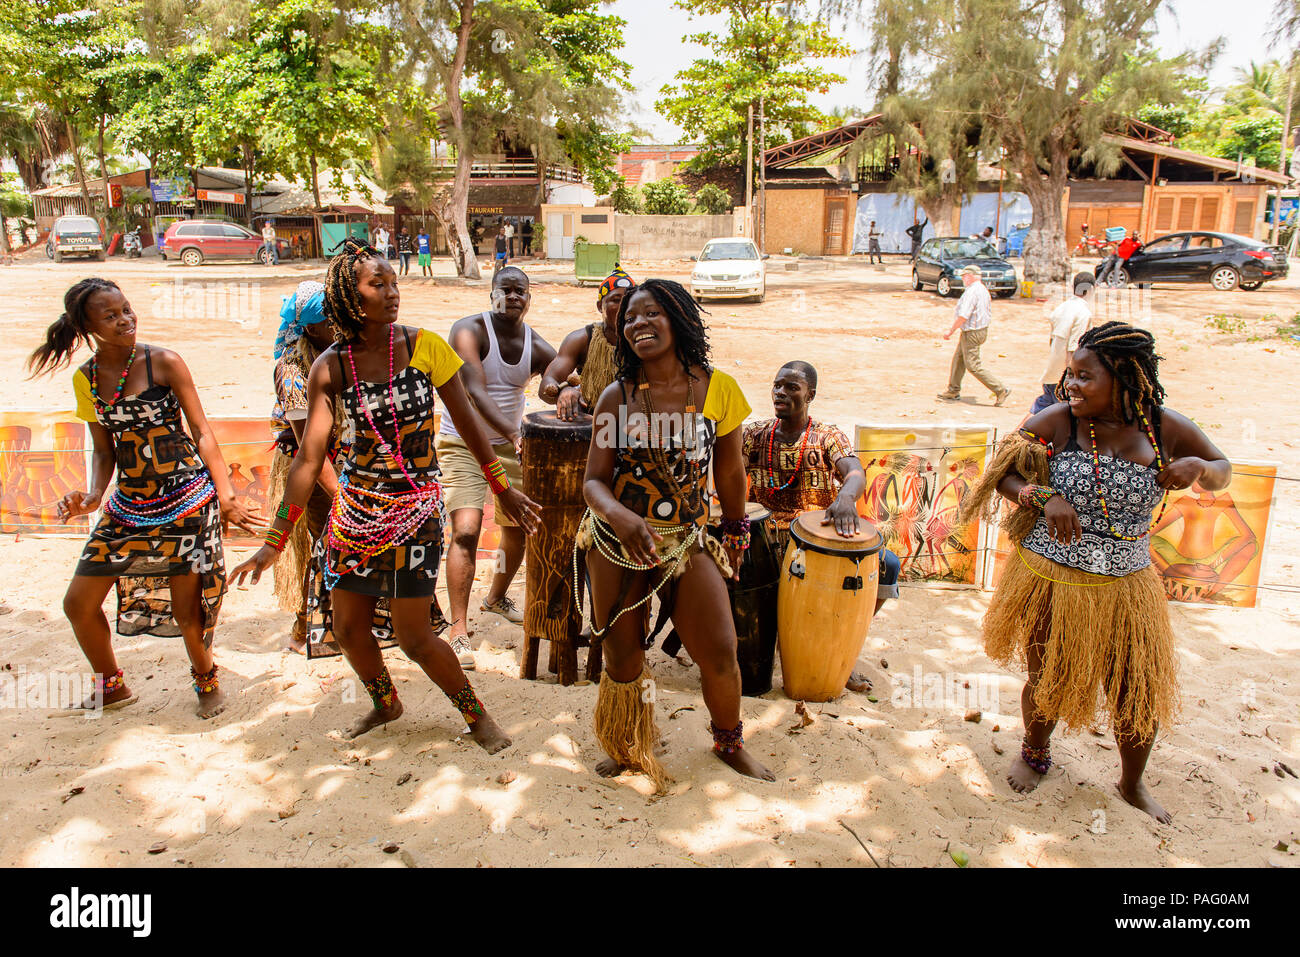 ANGOLA, LUANDA - MARCH 4, 2013:  Unidentified Angolan women make the street performance of the national falk dance for the tourists in Angola, Mar 4,  - Stock Image